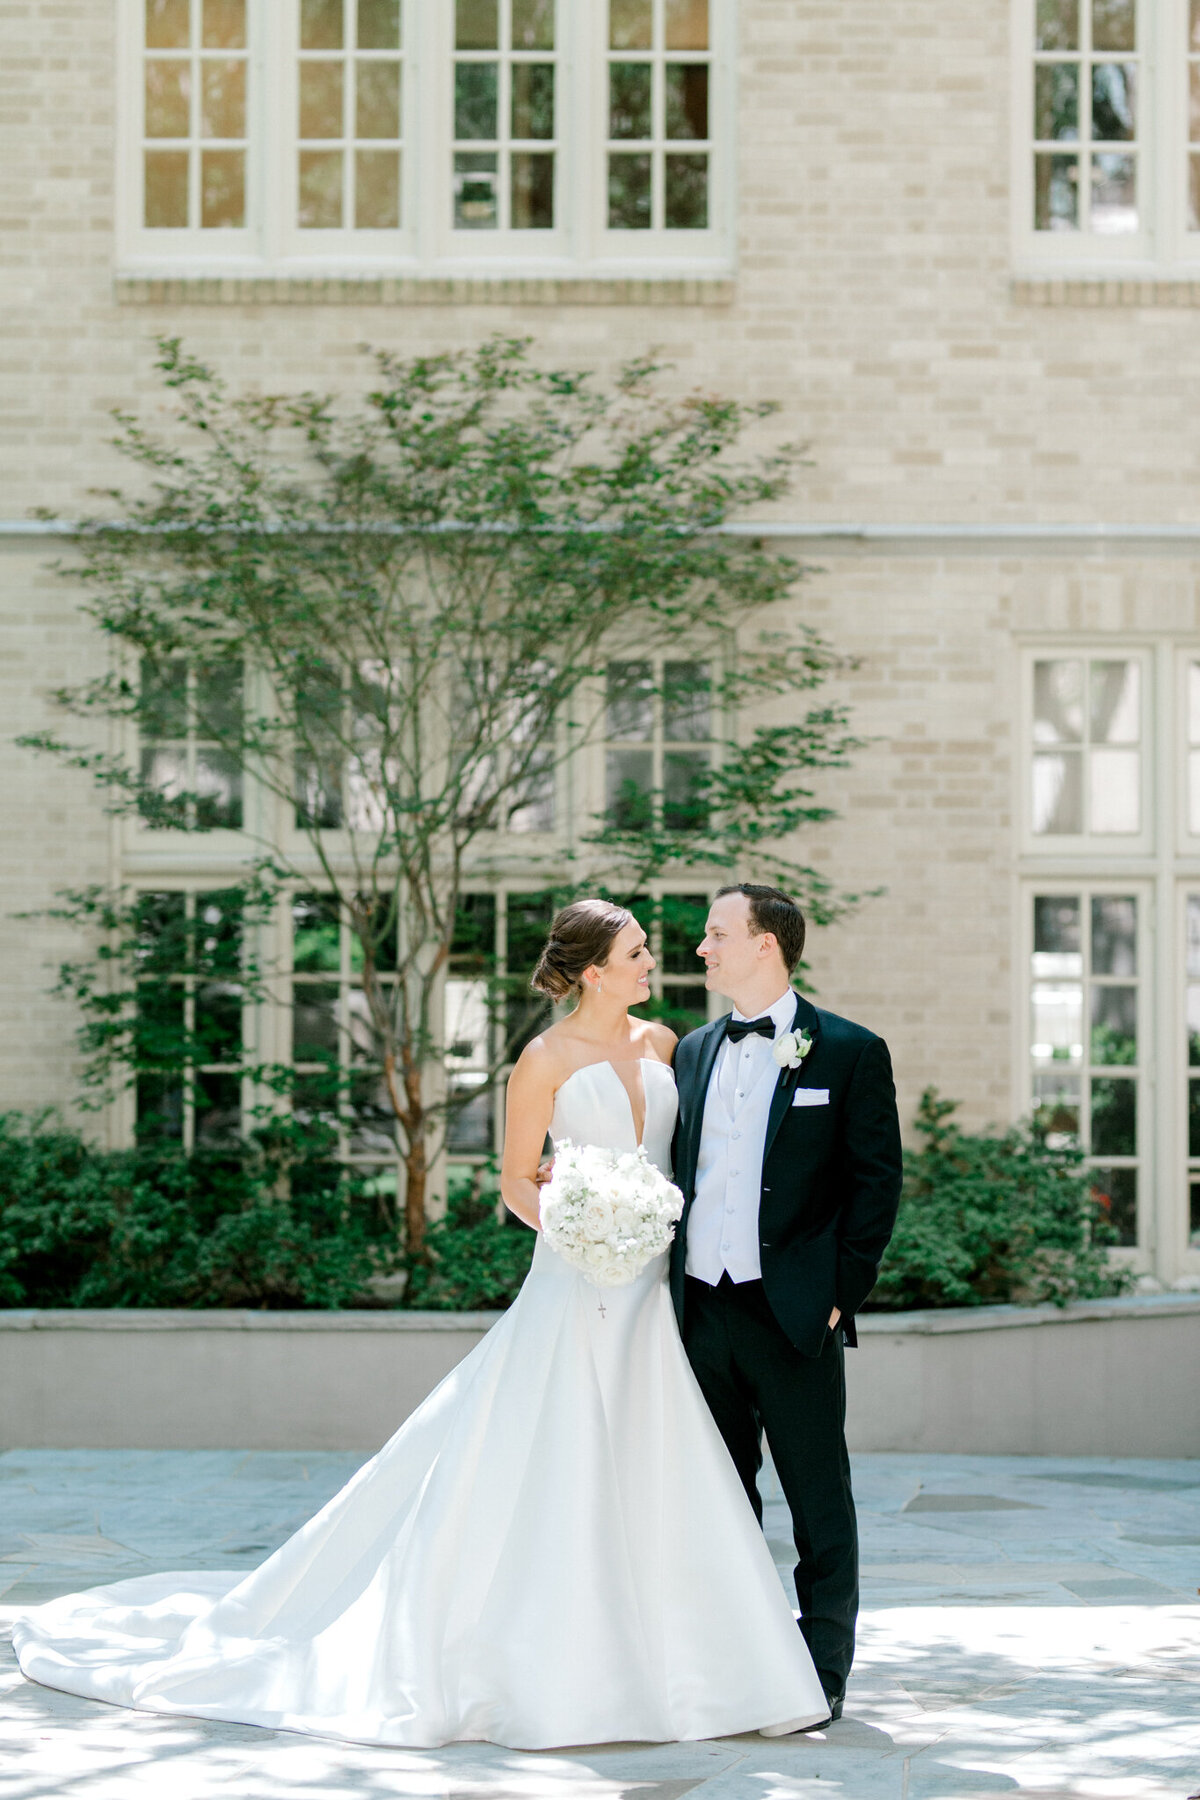 Wedding at the Crescent Court Hotel and Highland Park United Methodist Church in Dallas | Sami Kathryn Photography | DFW Wedding Photographer-99